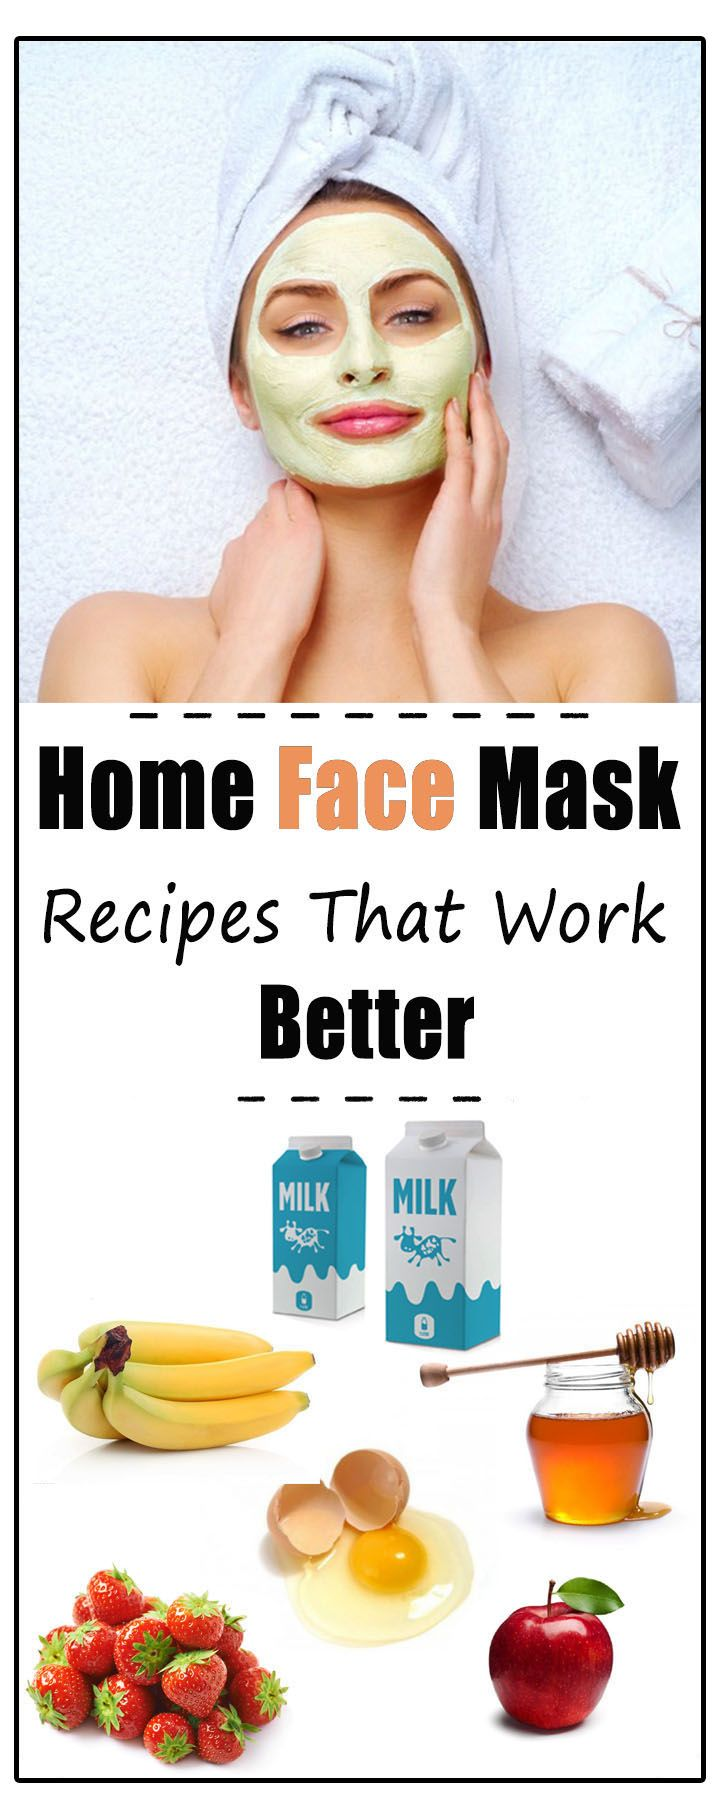 home face mask recipes that work better healthy society face mask rh pinterest com